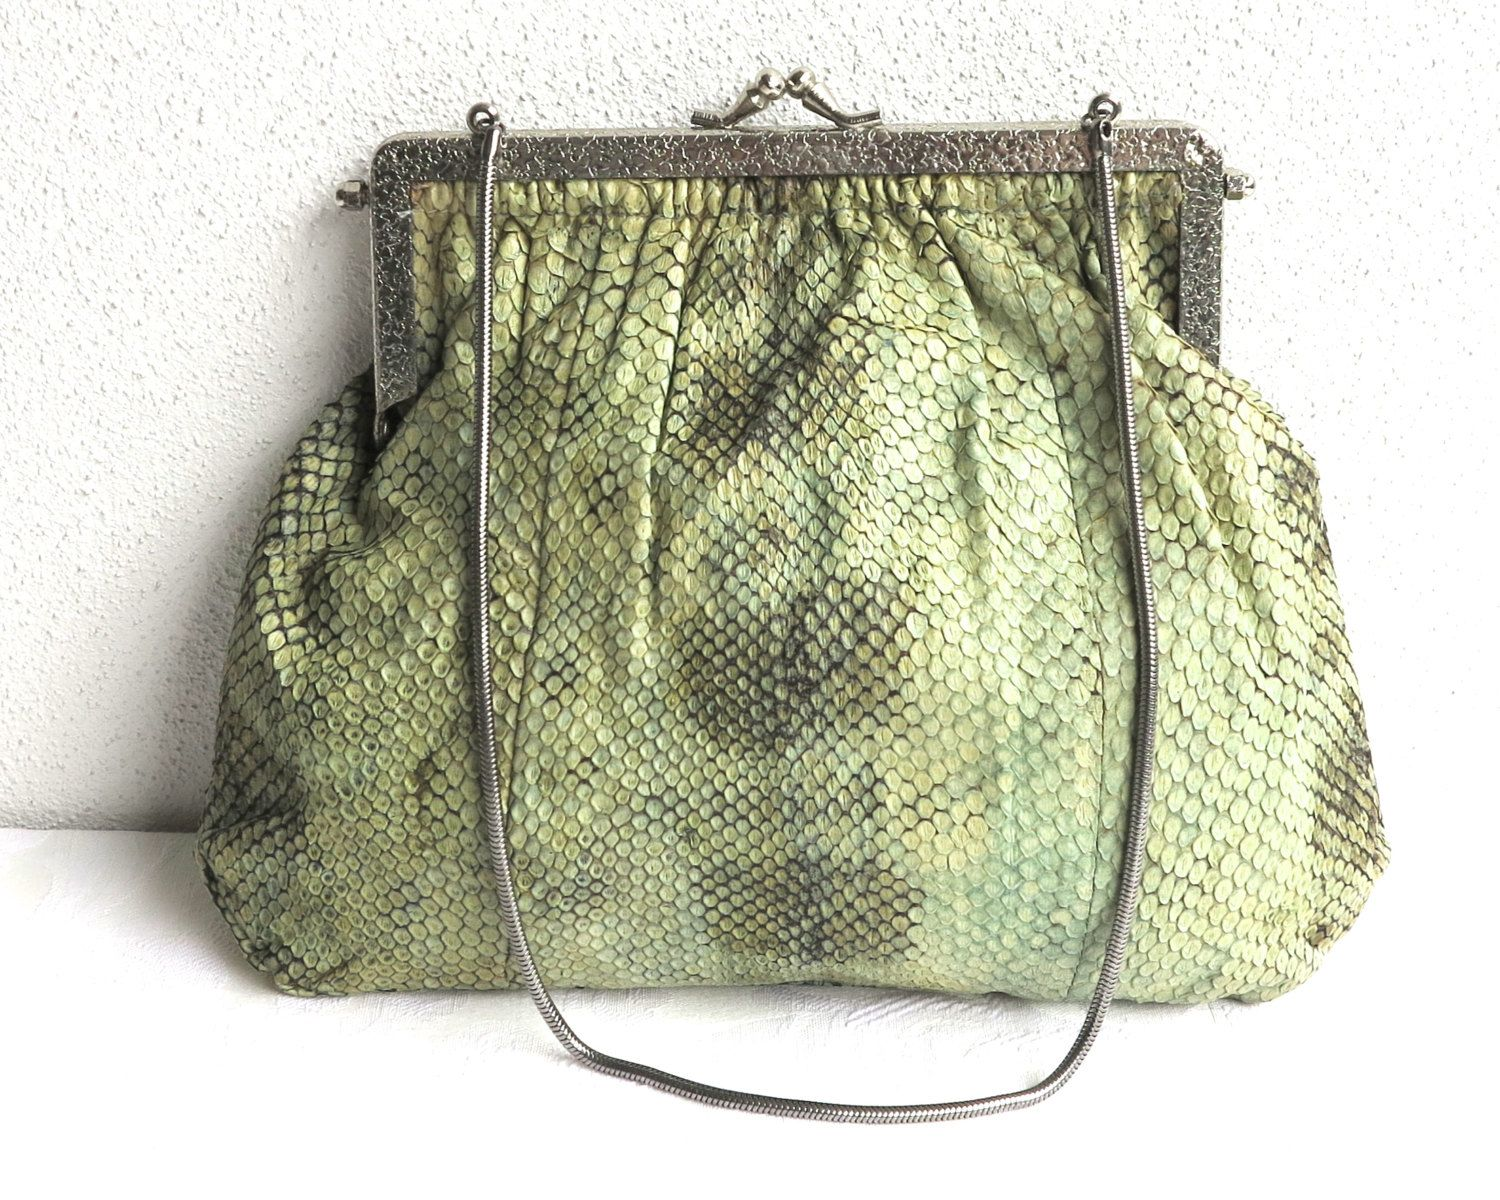 Green snakeskin purse with dark and light shades, silver pressed ...